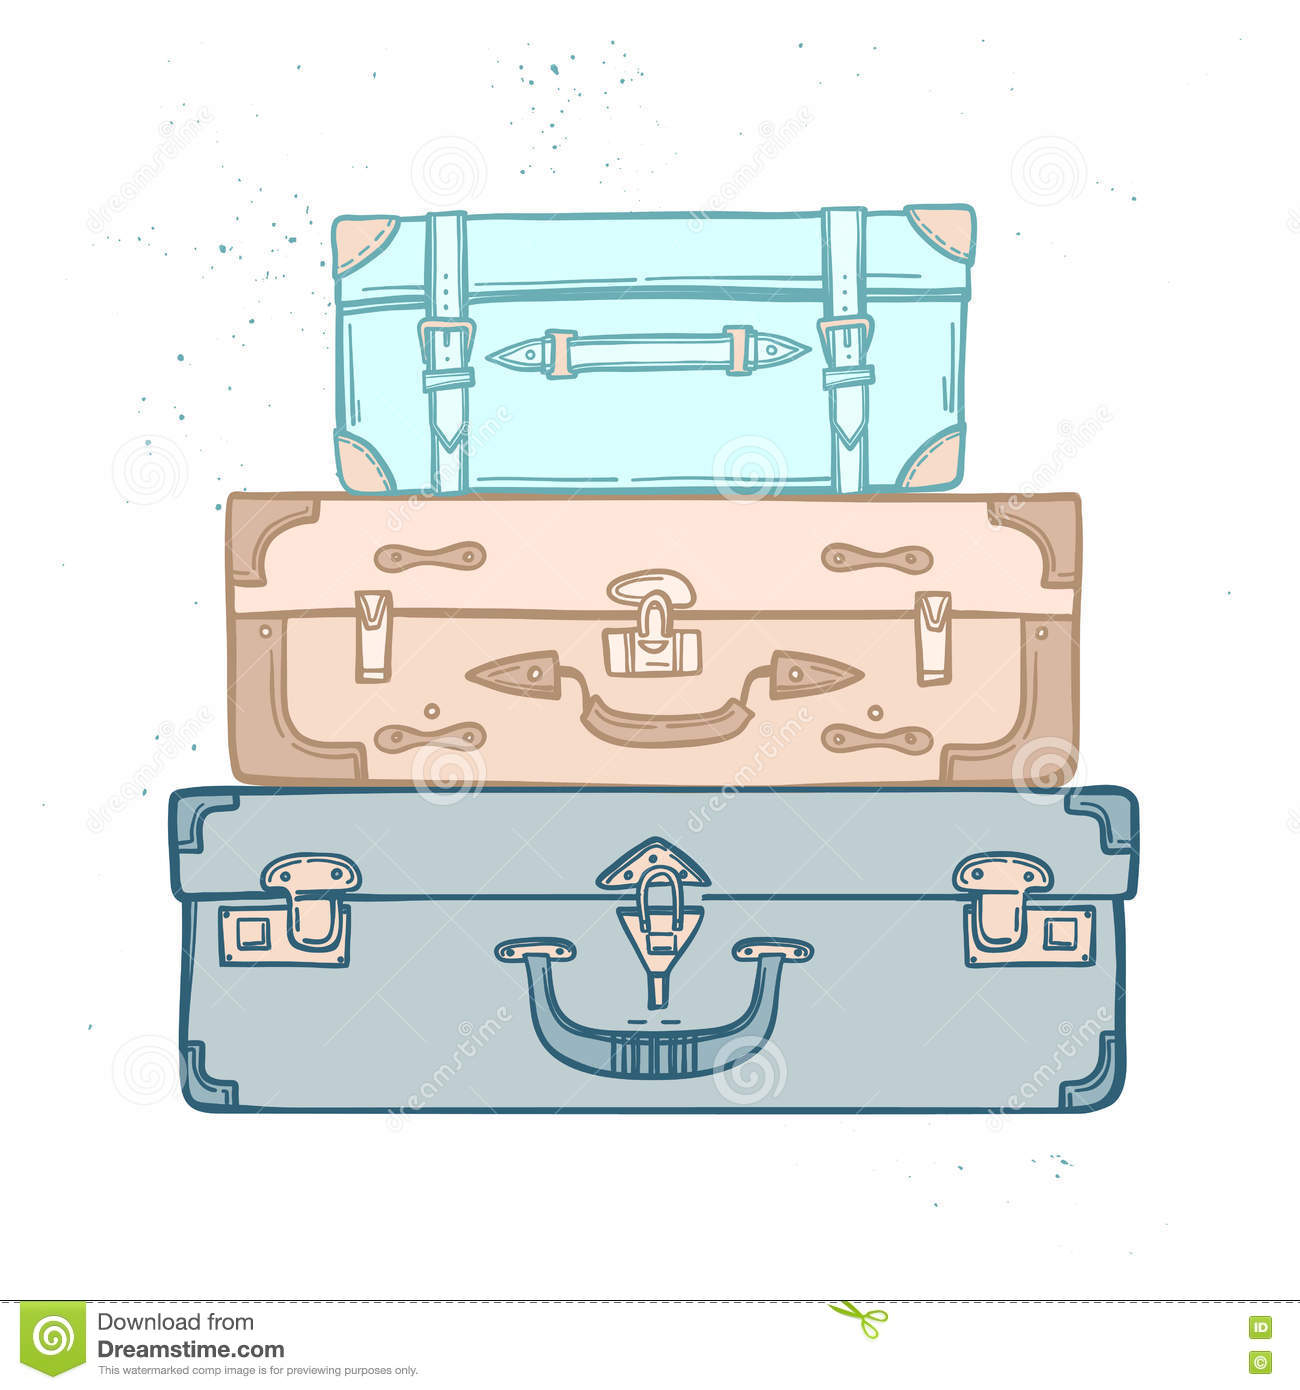 stacked cards cartoons  illustrations   vector stock Stacked Luggage Transparent Backround Stacked Luggage Transparent Backround